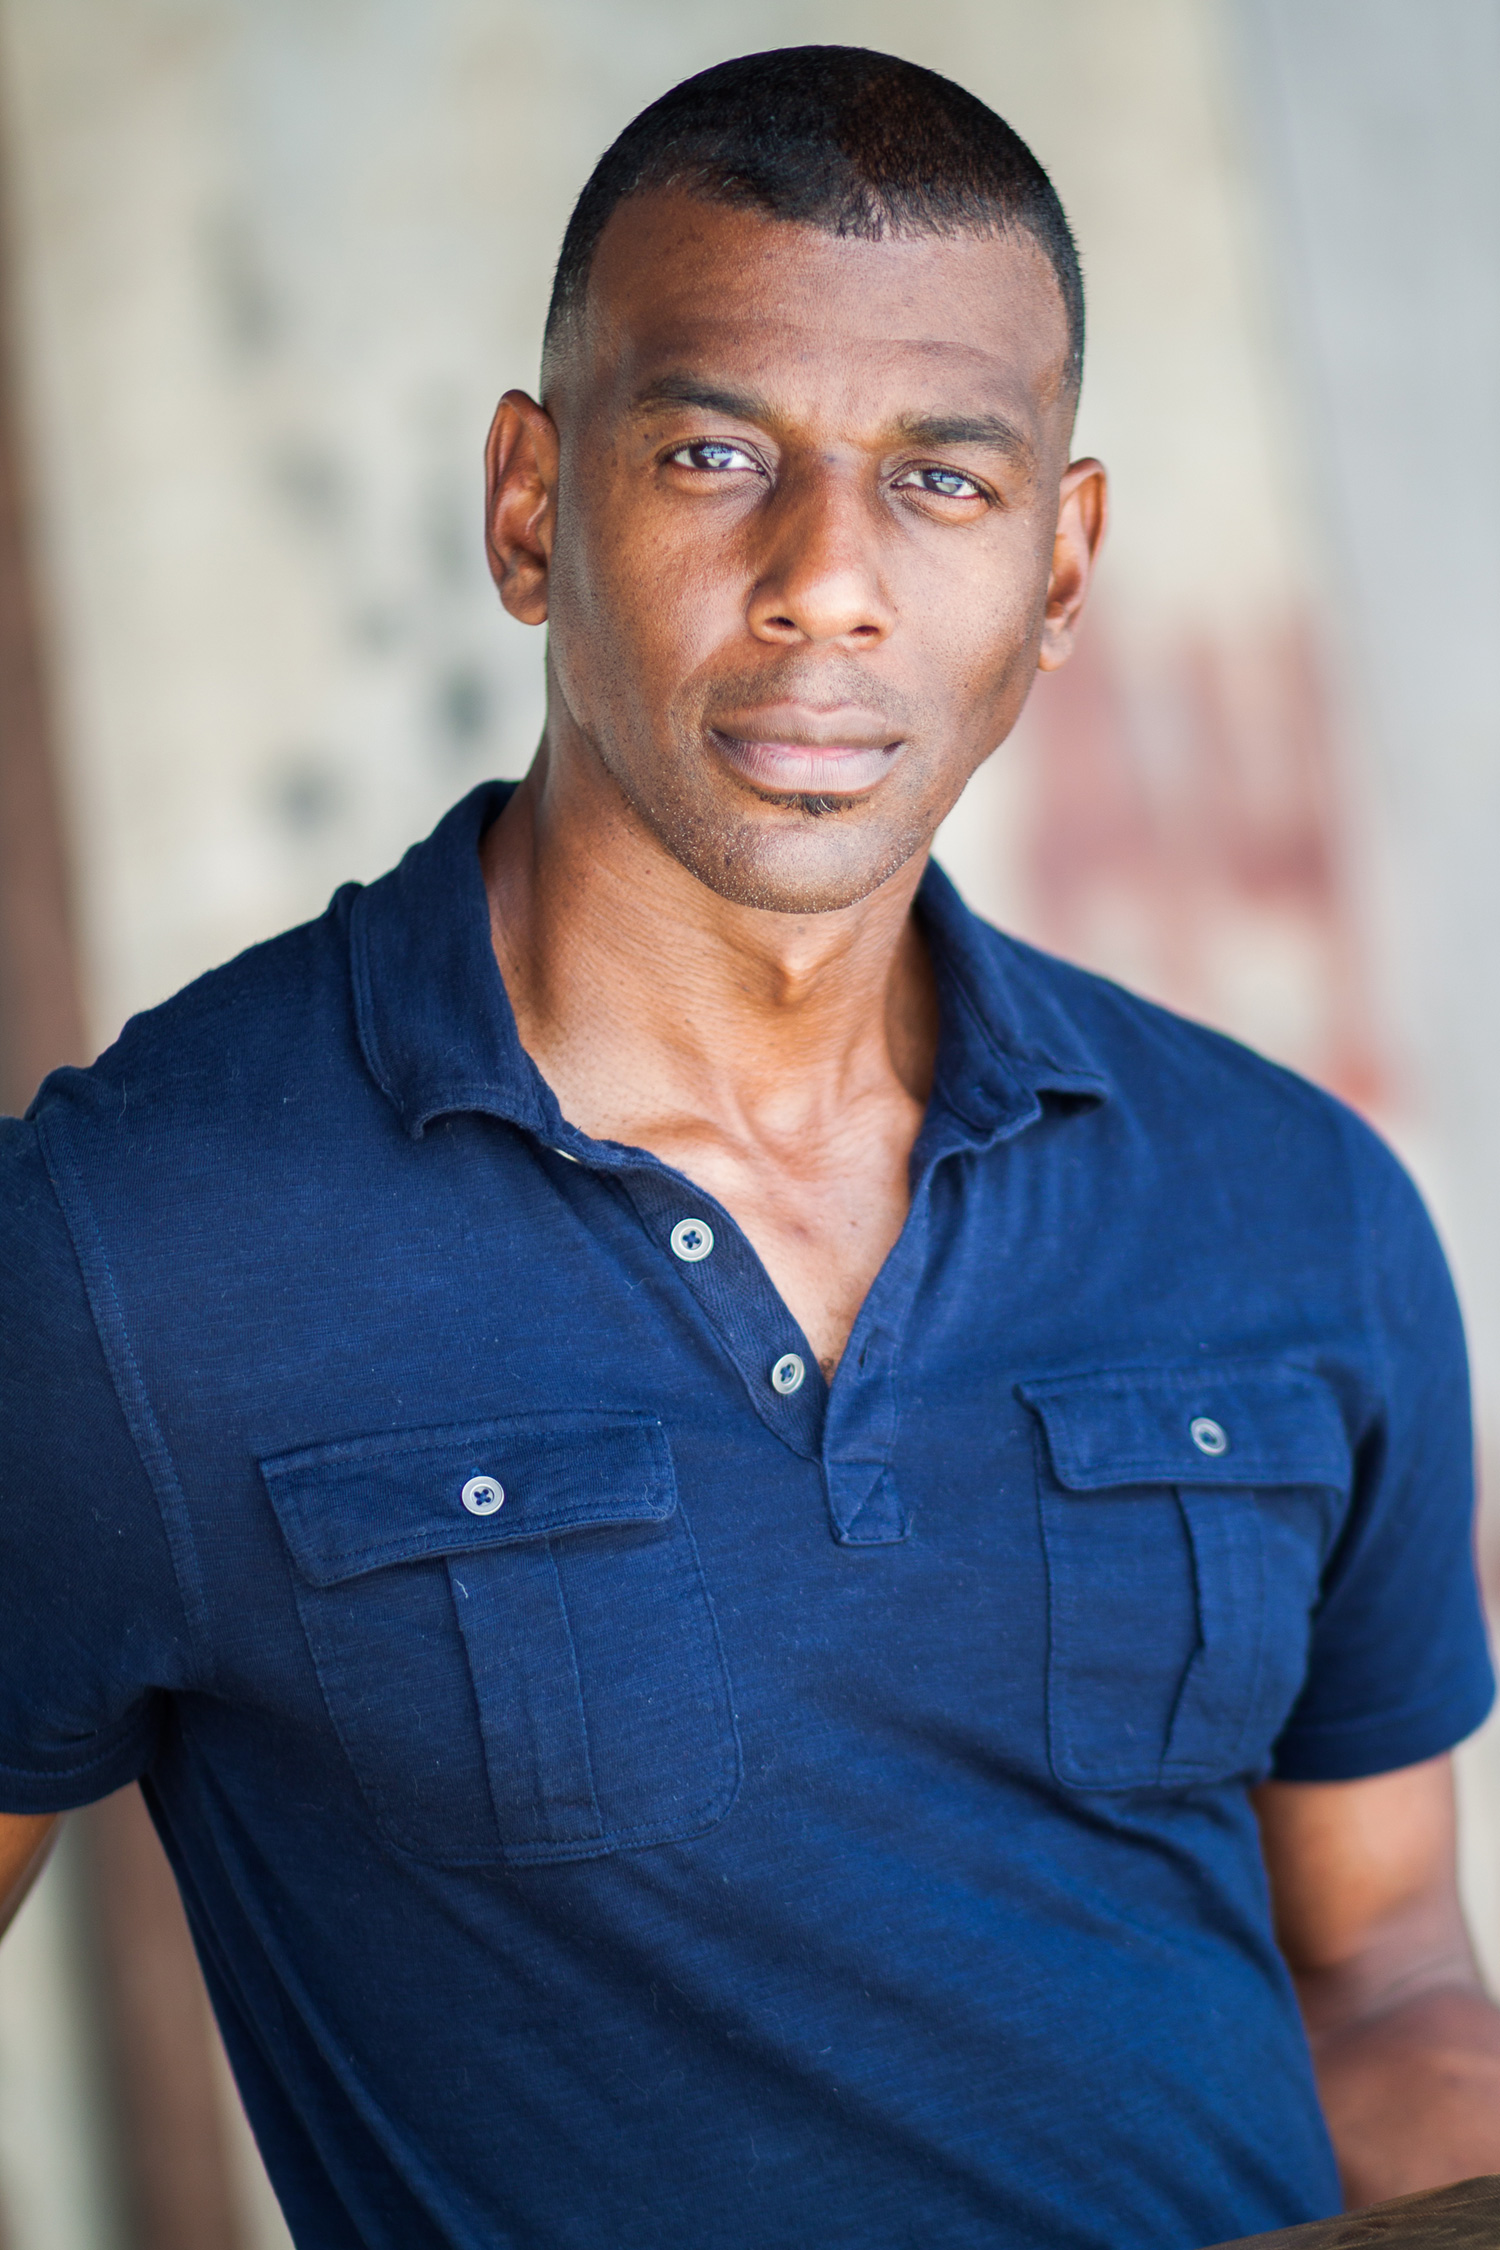 Headshot of African American male model and entertainer